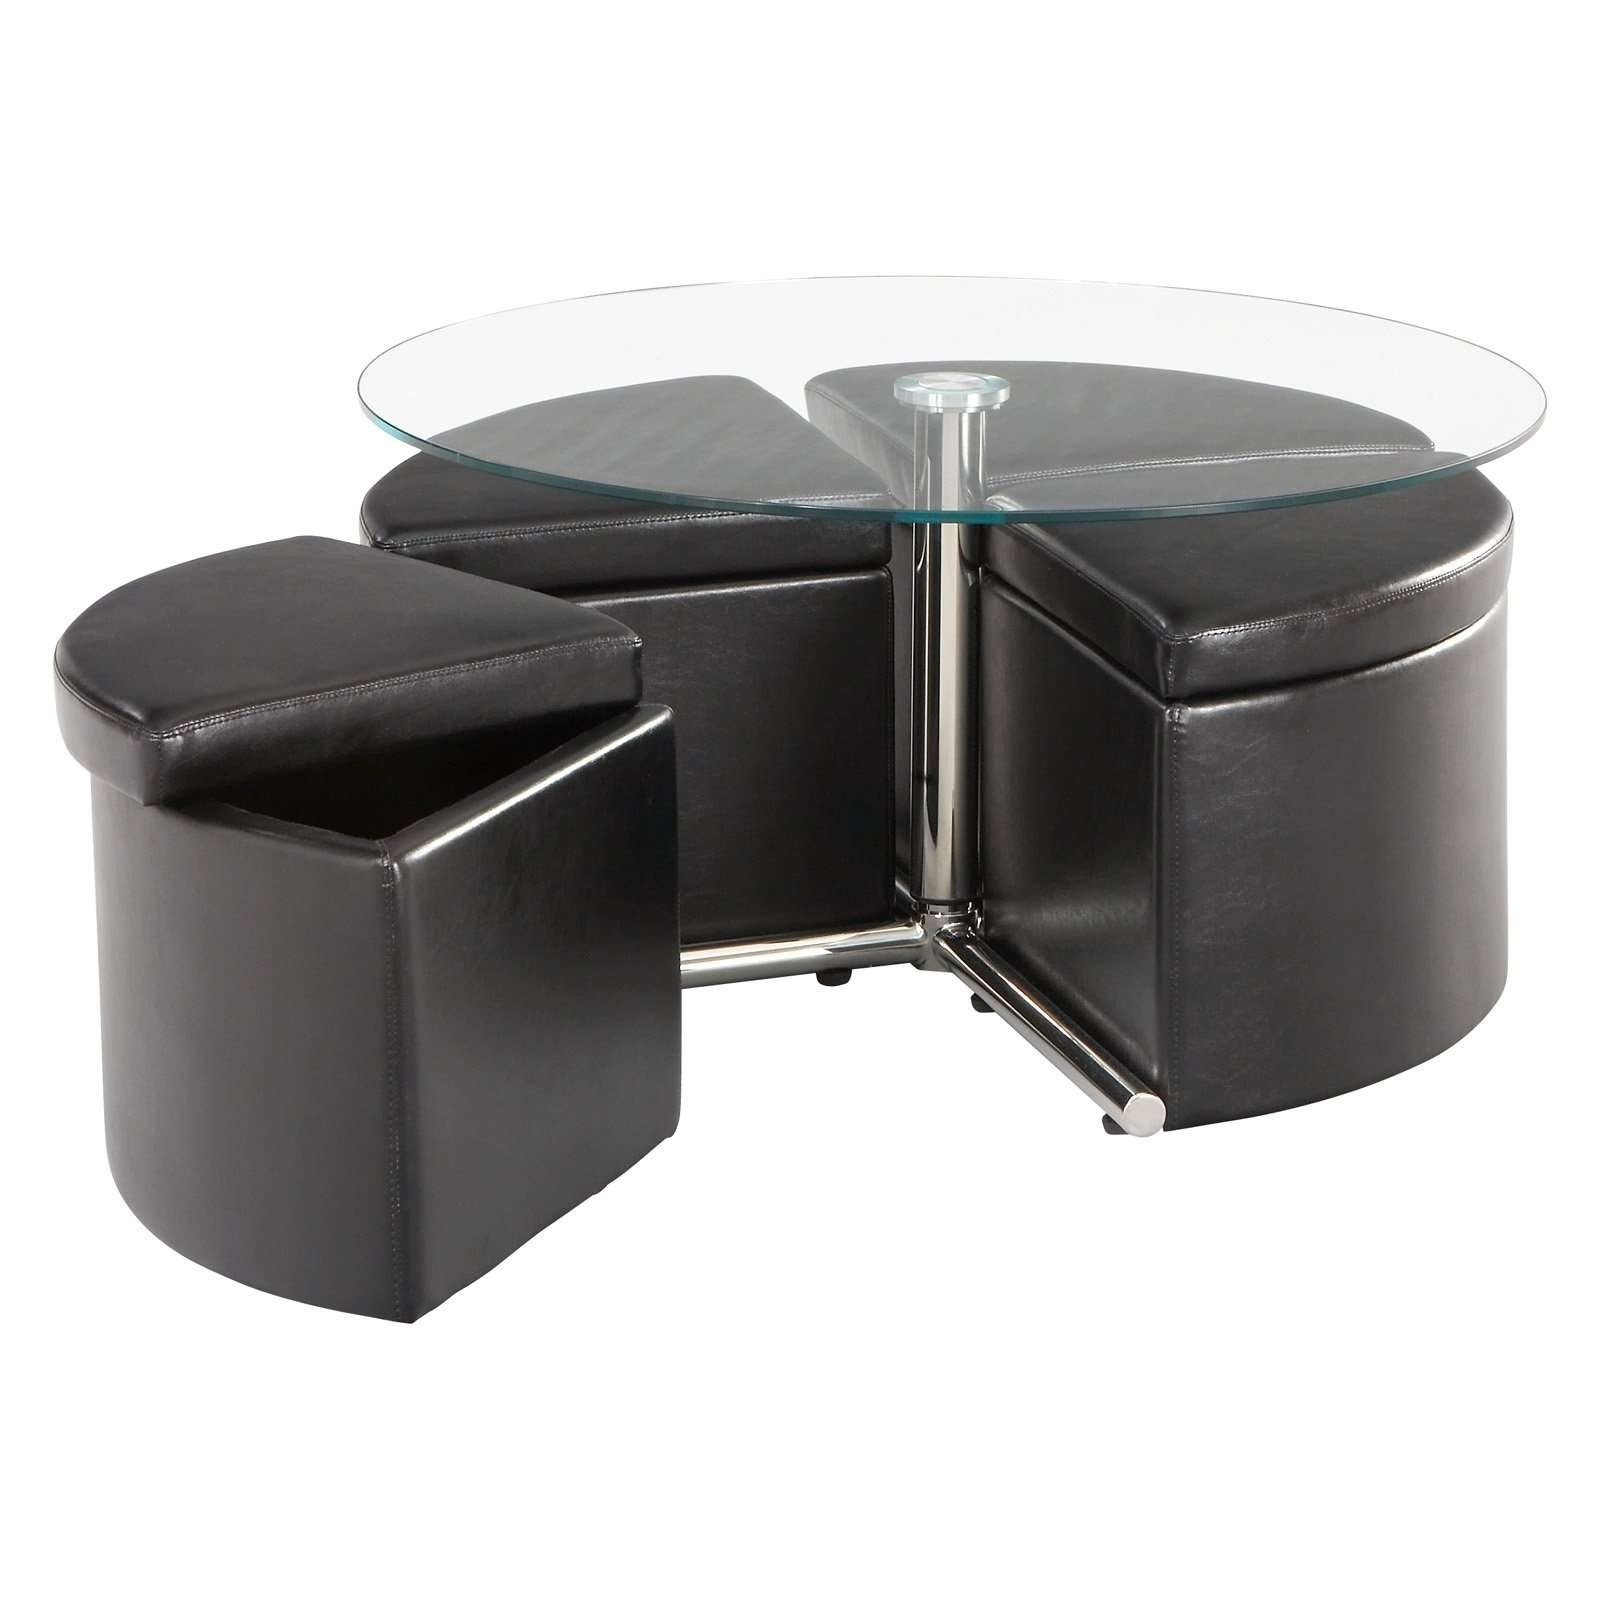 Good Round Coffee Table With Storage On Round Coffee Tables With Pertaining To Famous Circular Coffee Tables With Storage (View 12 of 20)